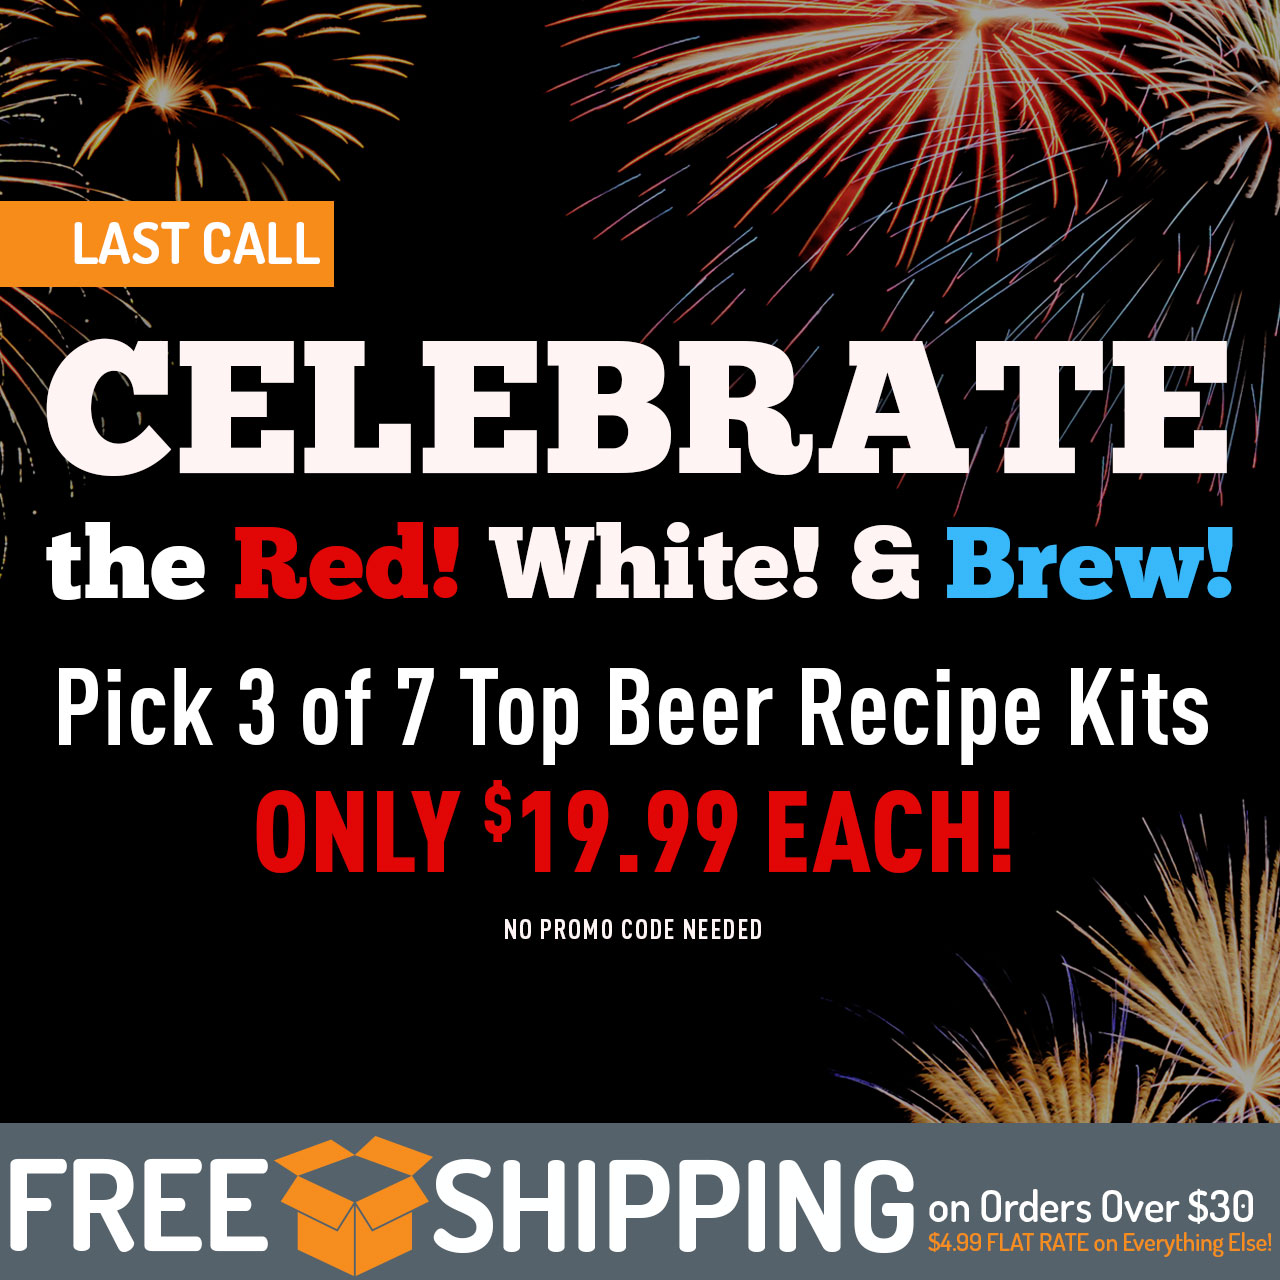 $19.99 Beer Kit Sale! No promo code required. Now though 11:59pm CST on 6/27/2018.